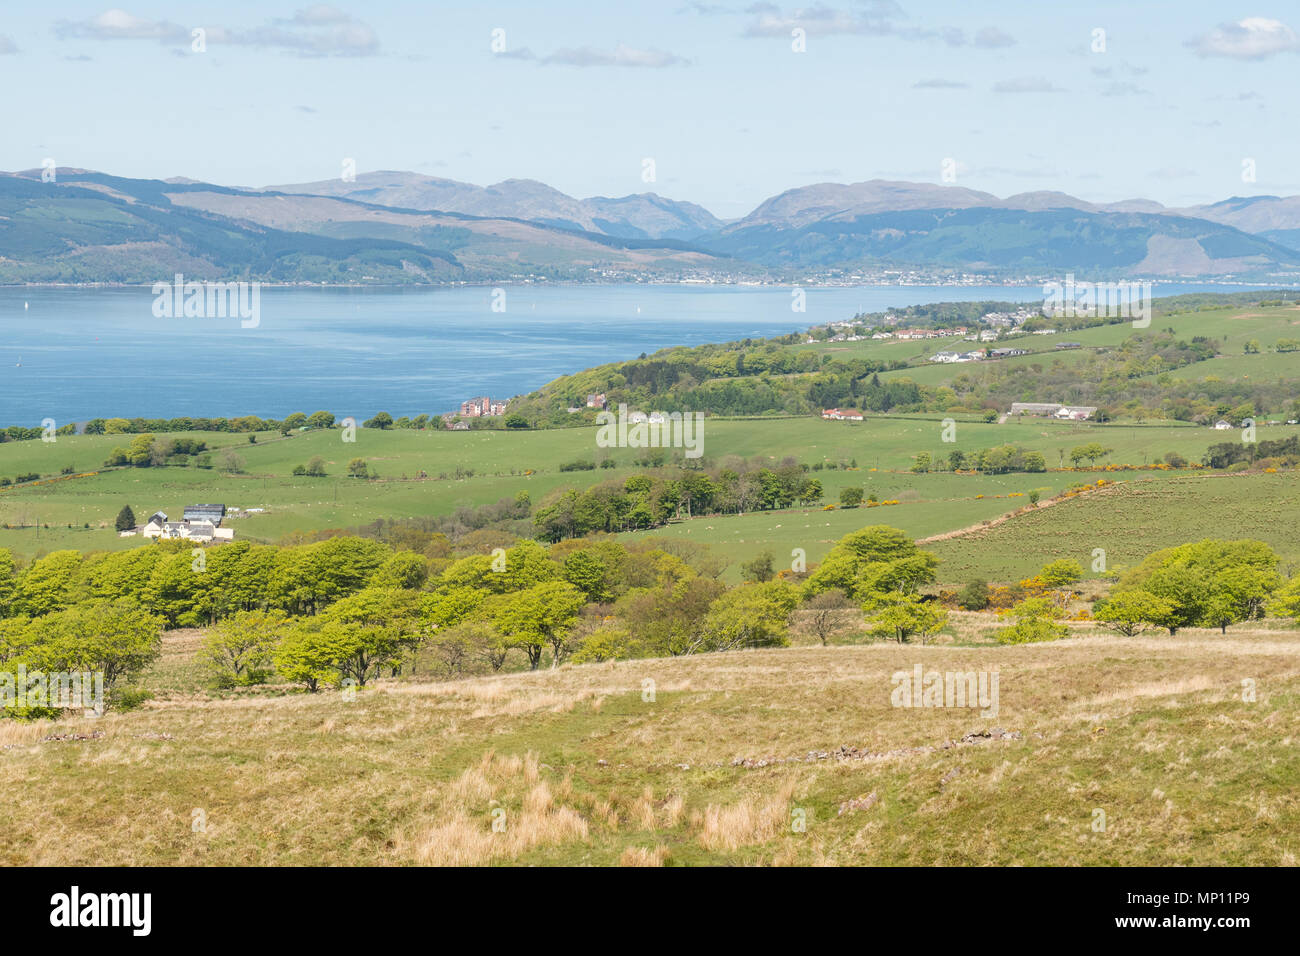 Cowal Penisula, Argyll and But, across the Firth of Clyde, view from Knock Hill, Largs, North Ayrshire, Scotland, UK - Stock Image